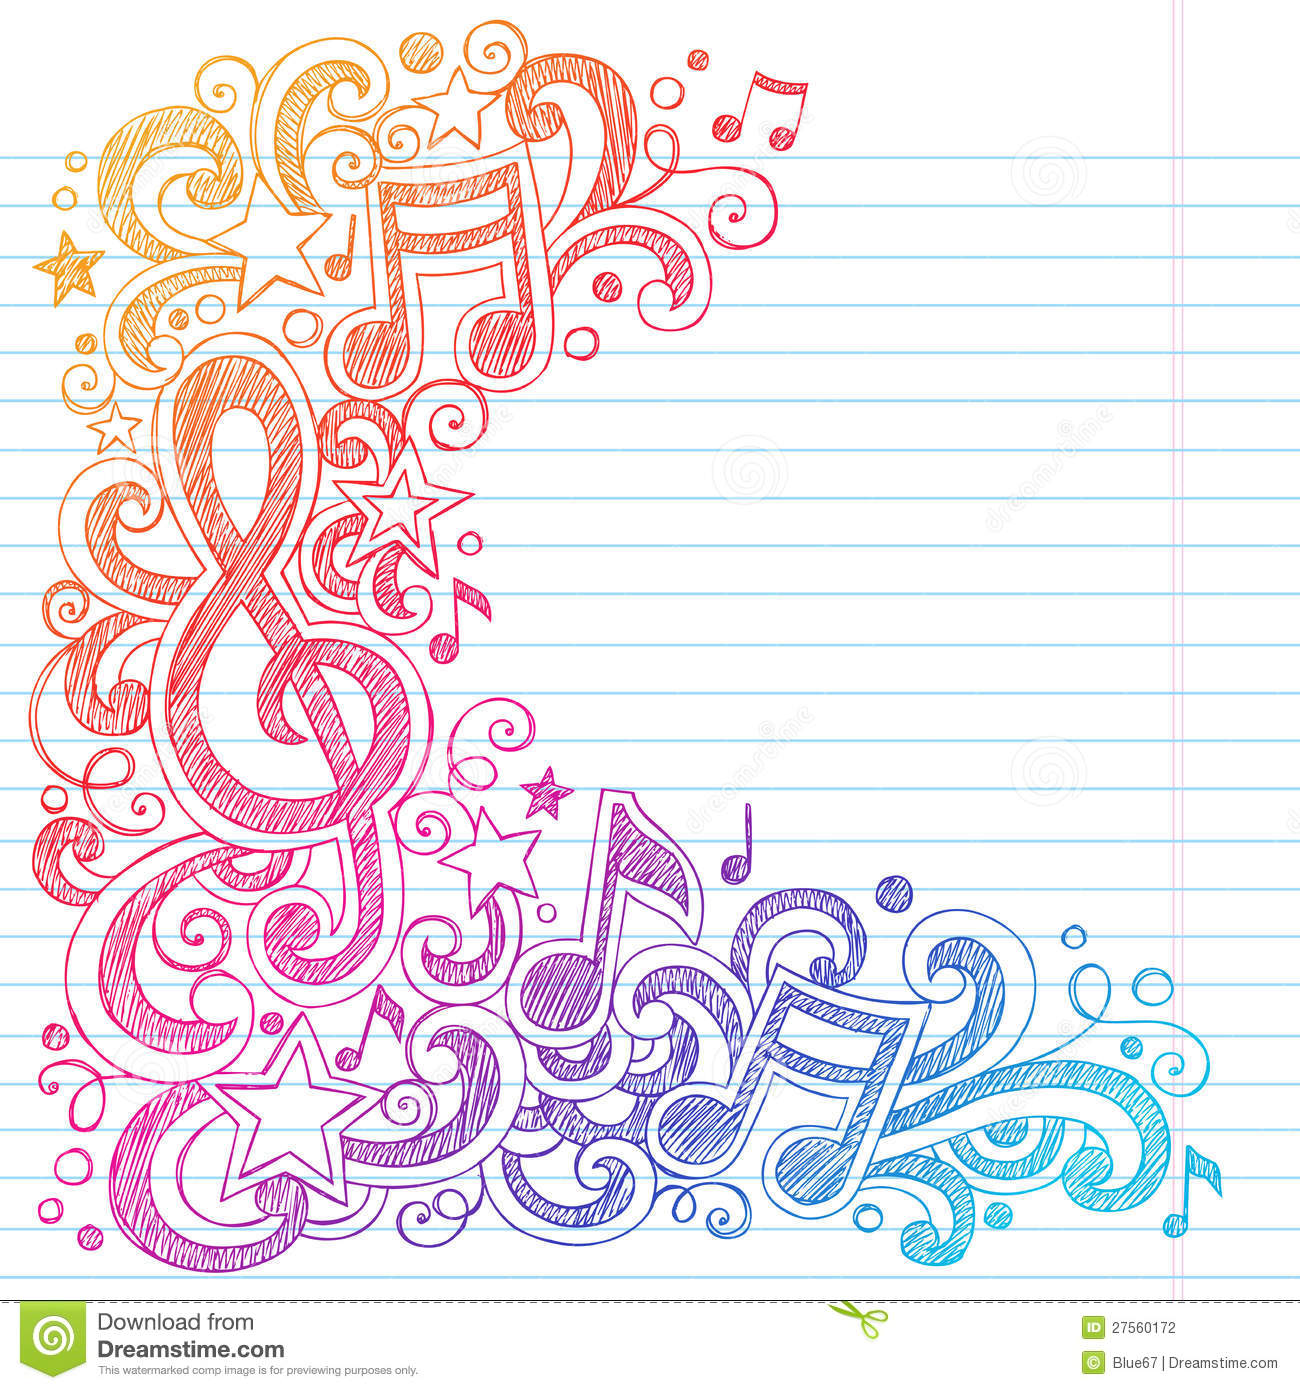 music notes sketchy school doodles vector stock photography image 27560172. Black Bedroom Furniture Sets. Home Design Ideas